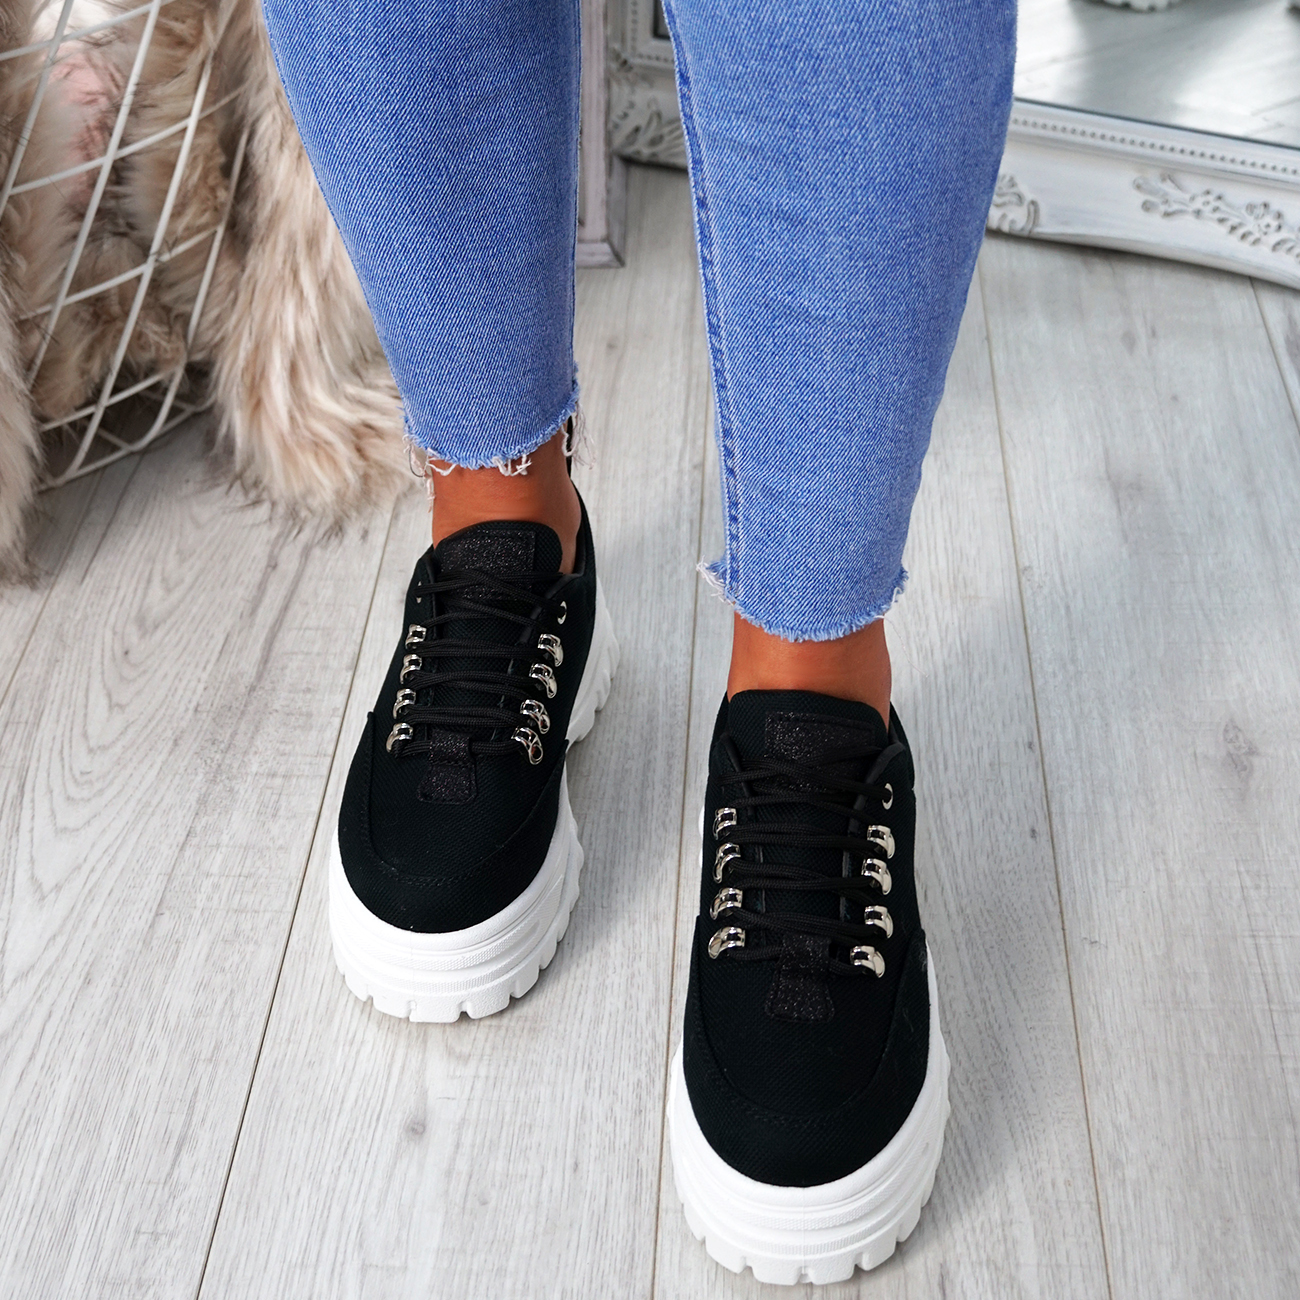 8a9eadc029b WOMENS LADIES PLATFORM TRAINERS LACE UP SNEAKERS PLIMSOLLS COMFY ...